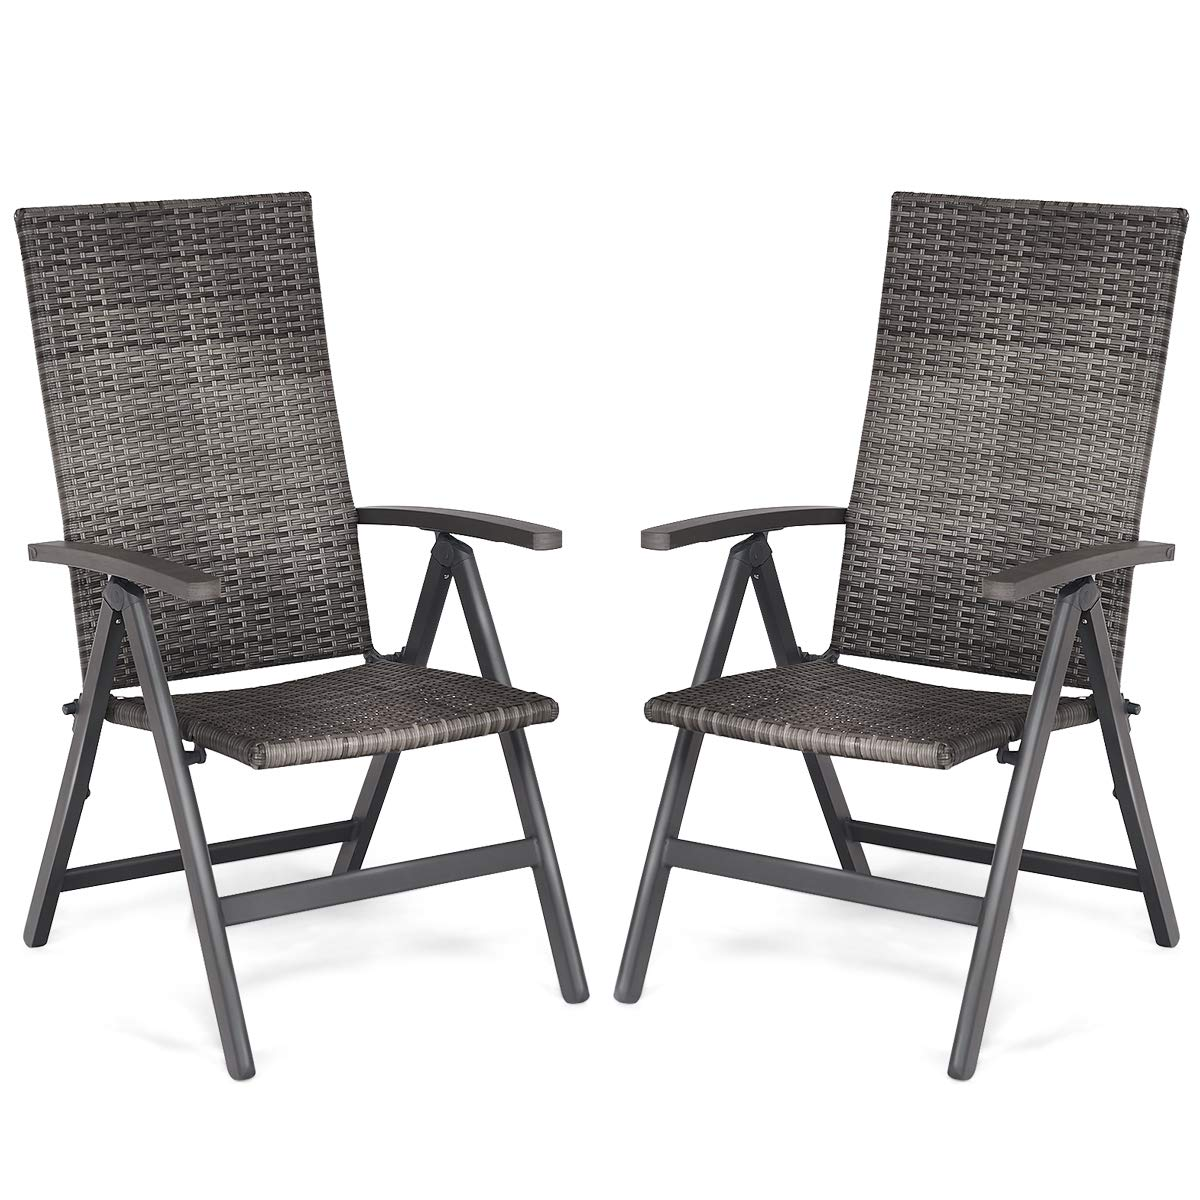 Tangkula 2 PCS Rattan Folding Chairs Outdoor Patio Garden Pool Wicker Chairs with 5 Adjustable Positions Back Adjustable Camping Rattan Reclining Chairs Folding Portable and Beach Deck Chair with Arm